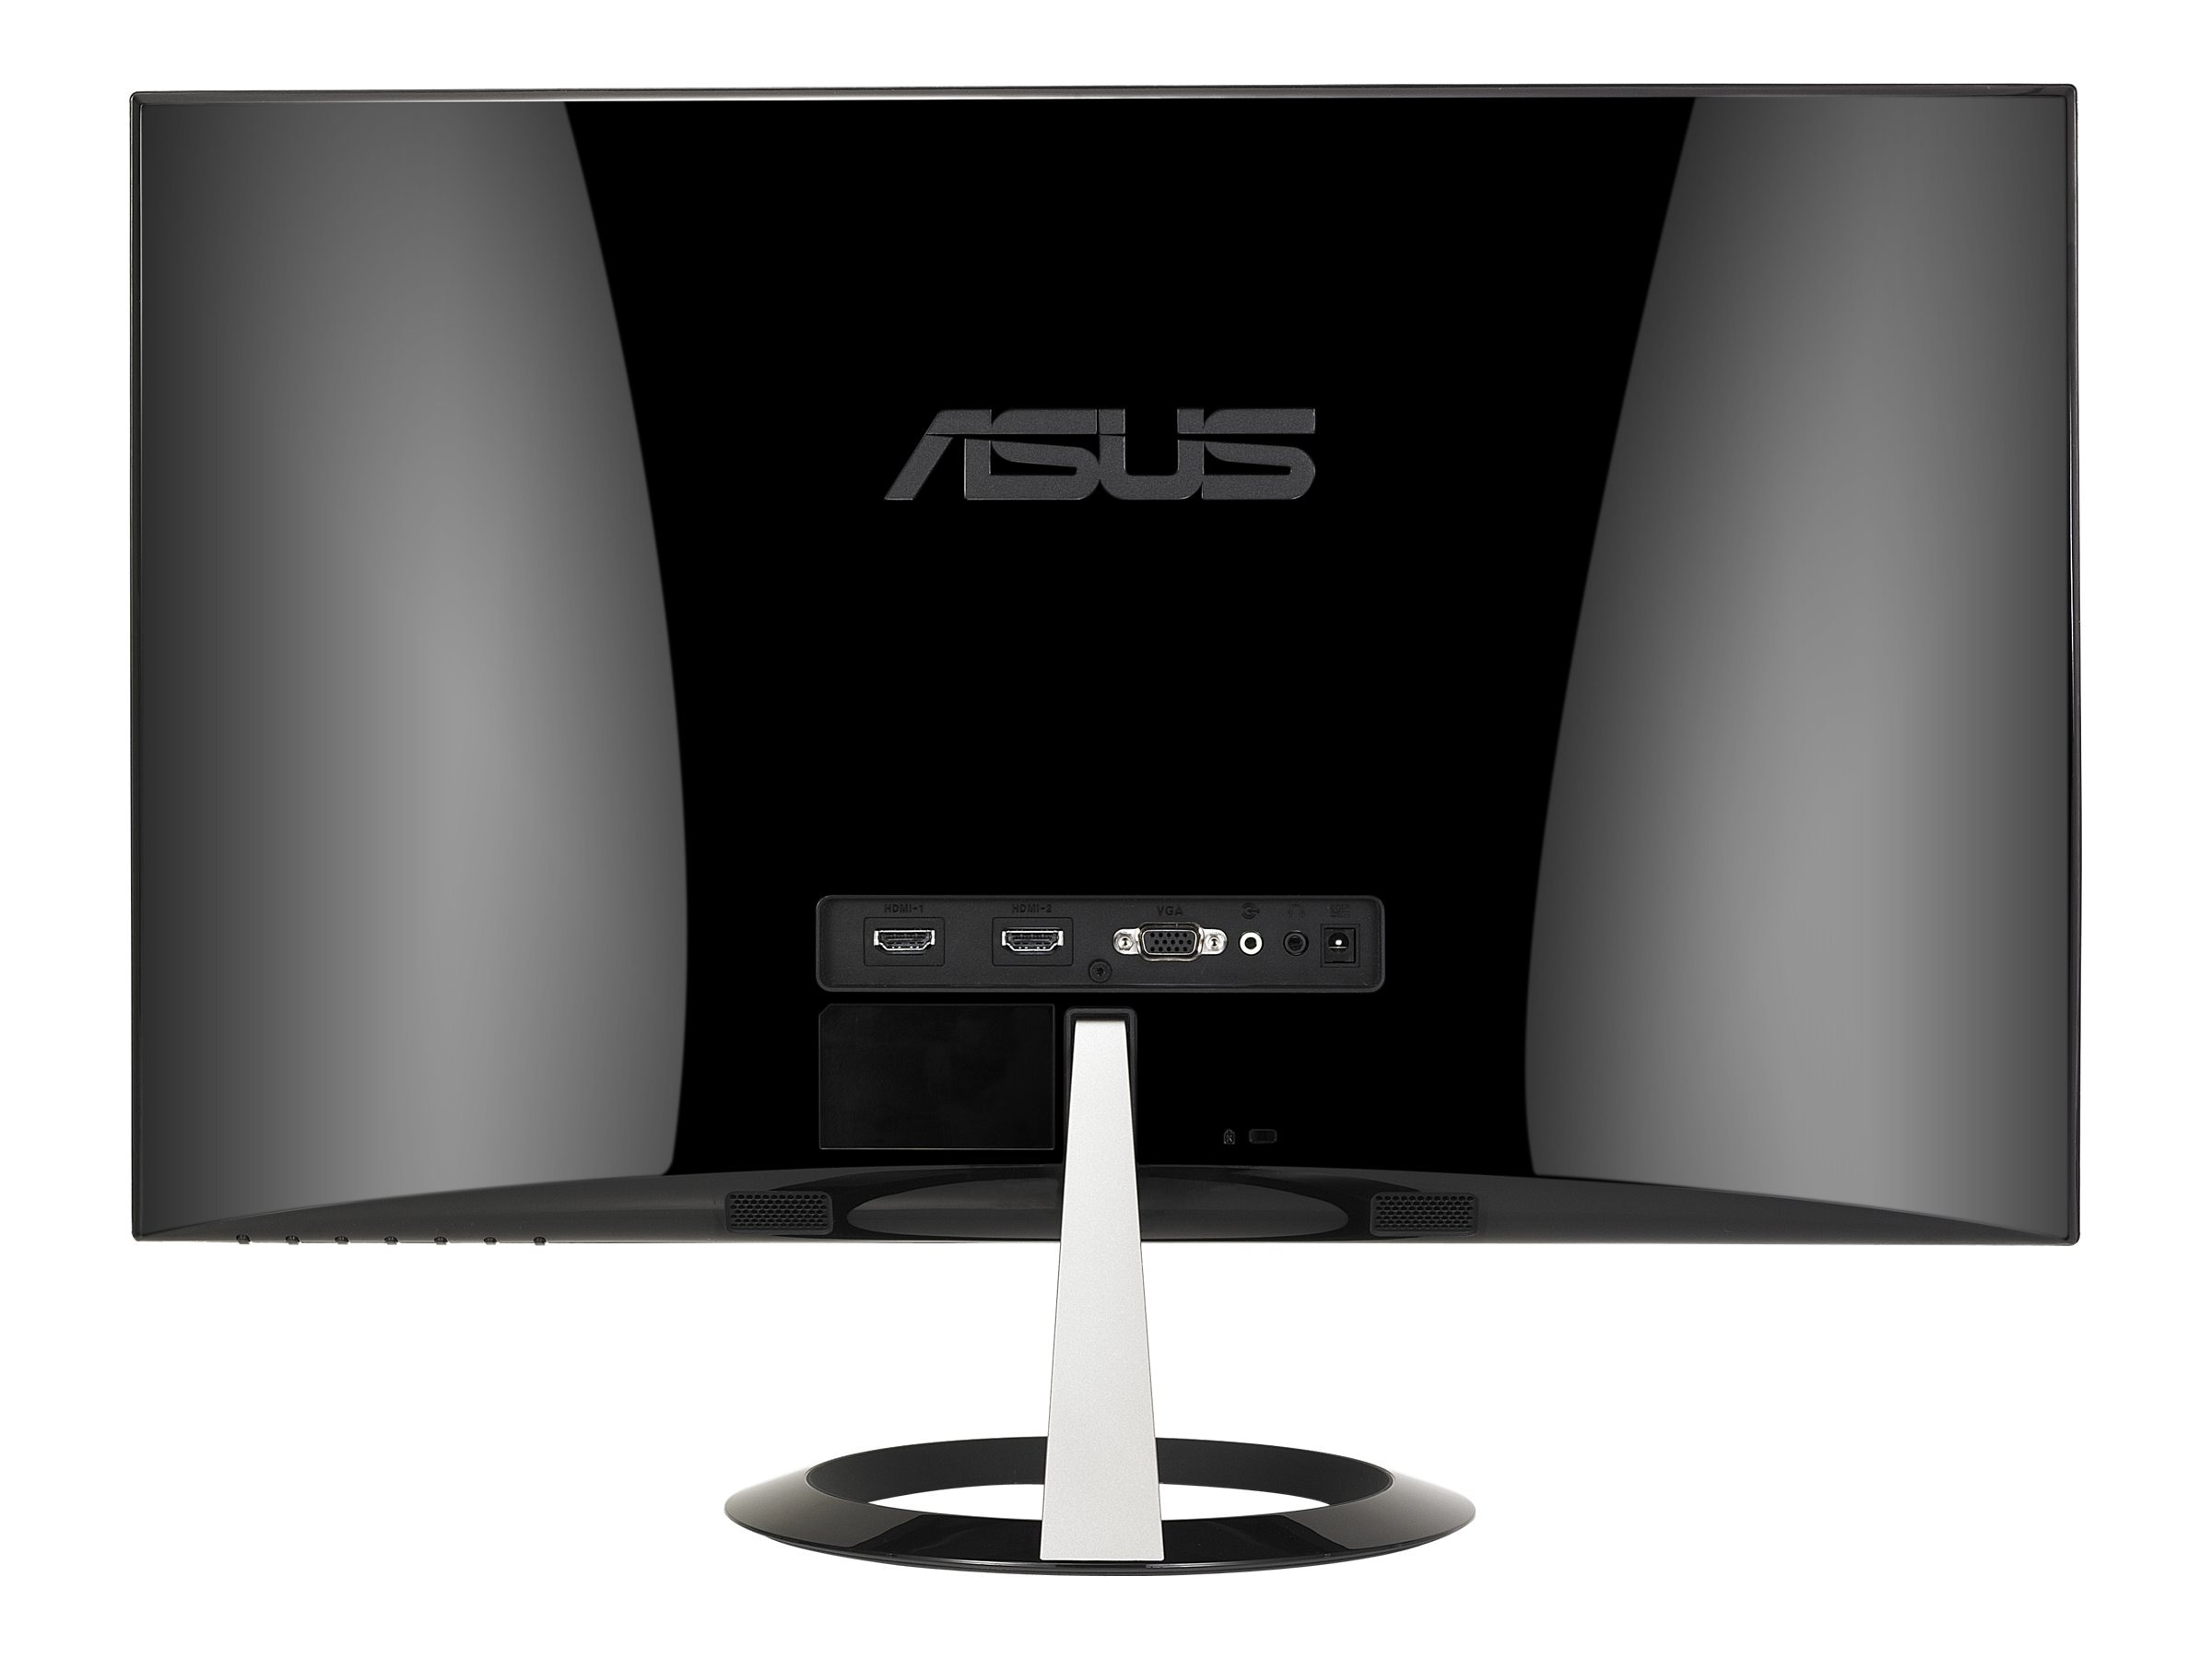 Asus 23 VX238H Full HD LED-LCD Monitor, Black, VX238H